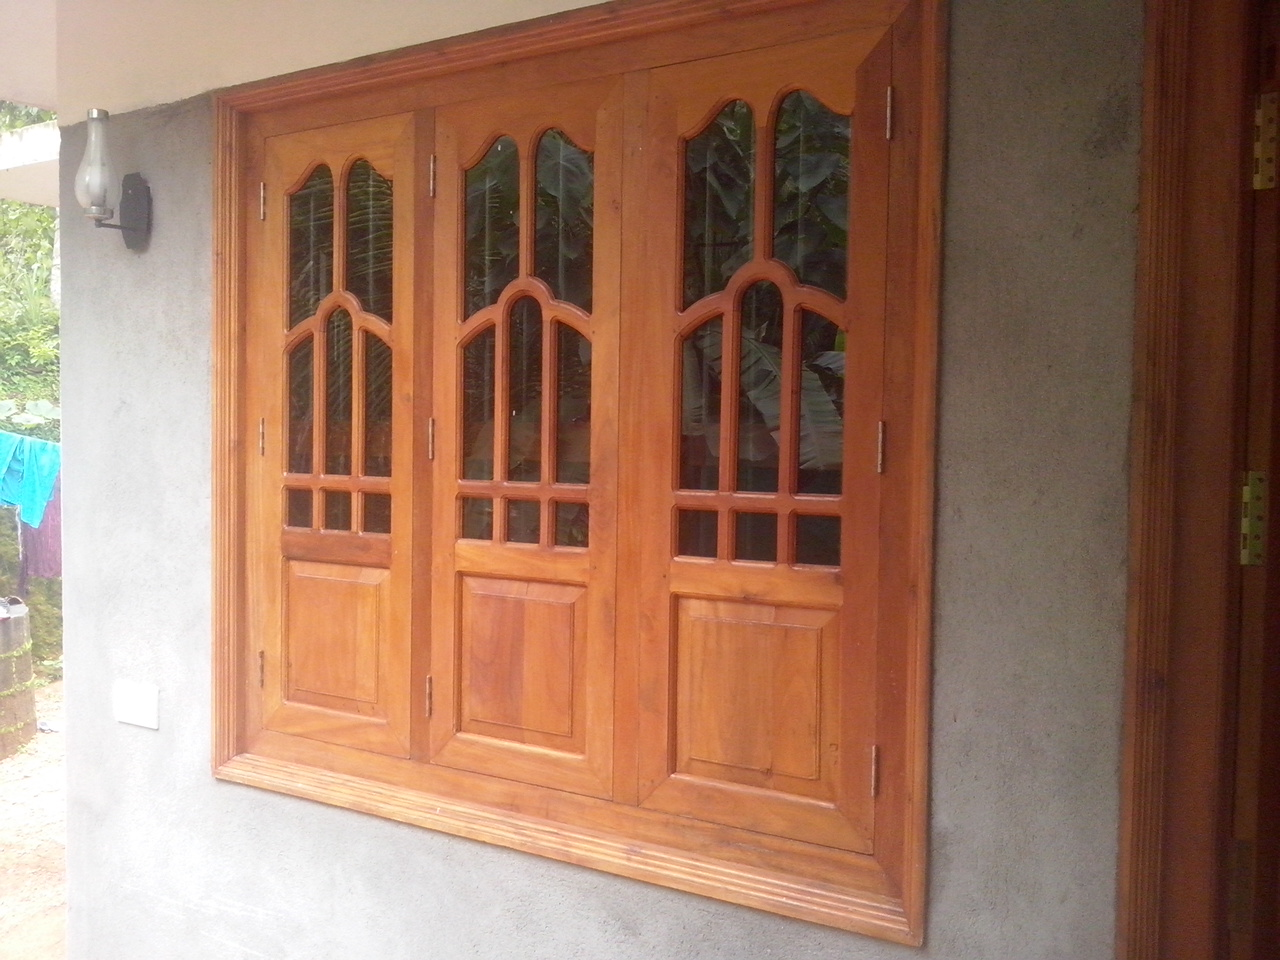 Bavas wood works kerala style wooden window door designs for Window design wooden